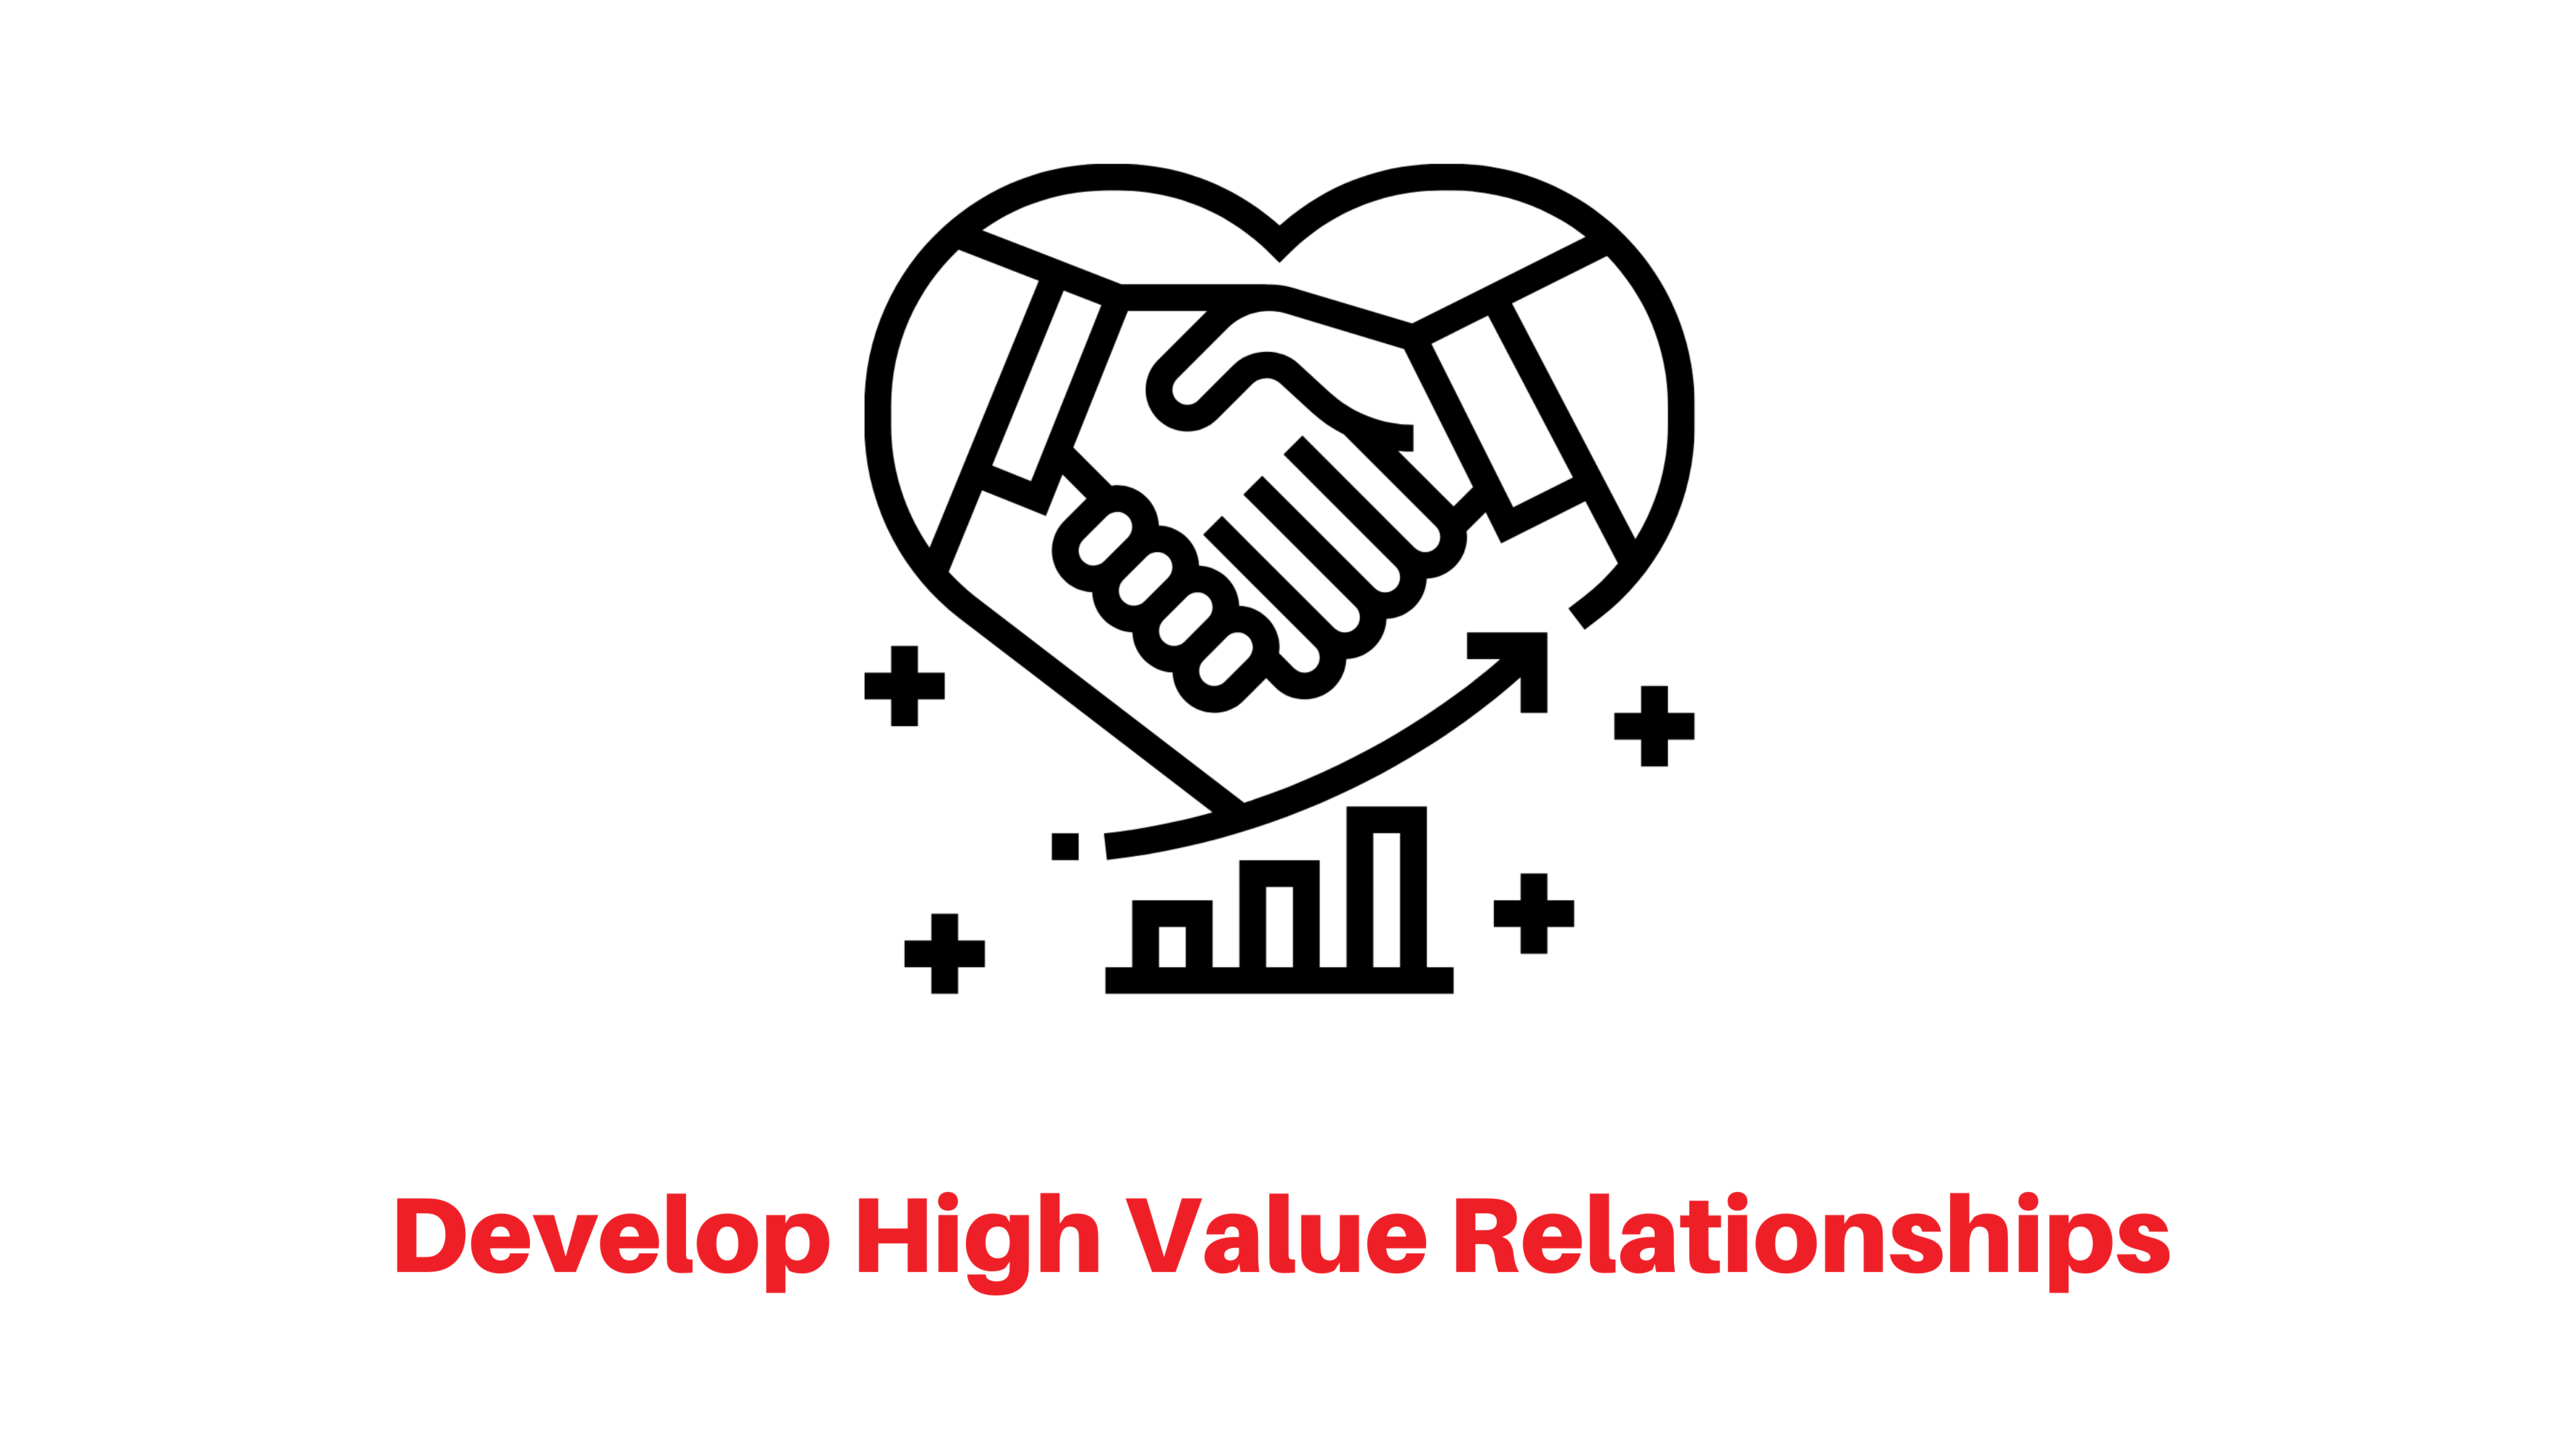 Develop high value relationships